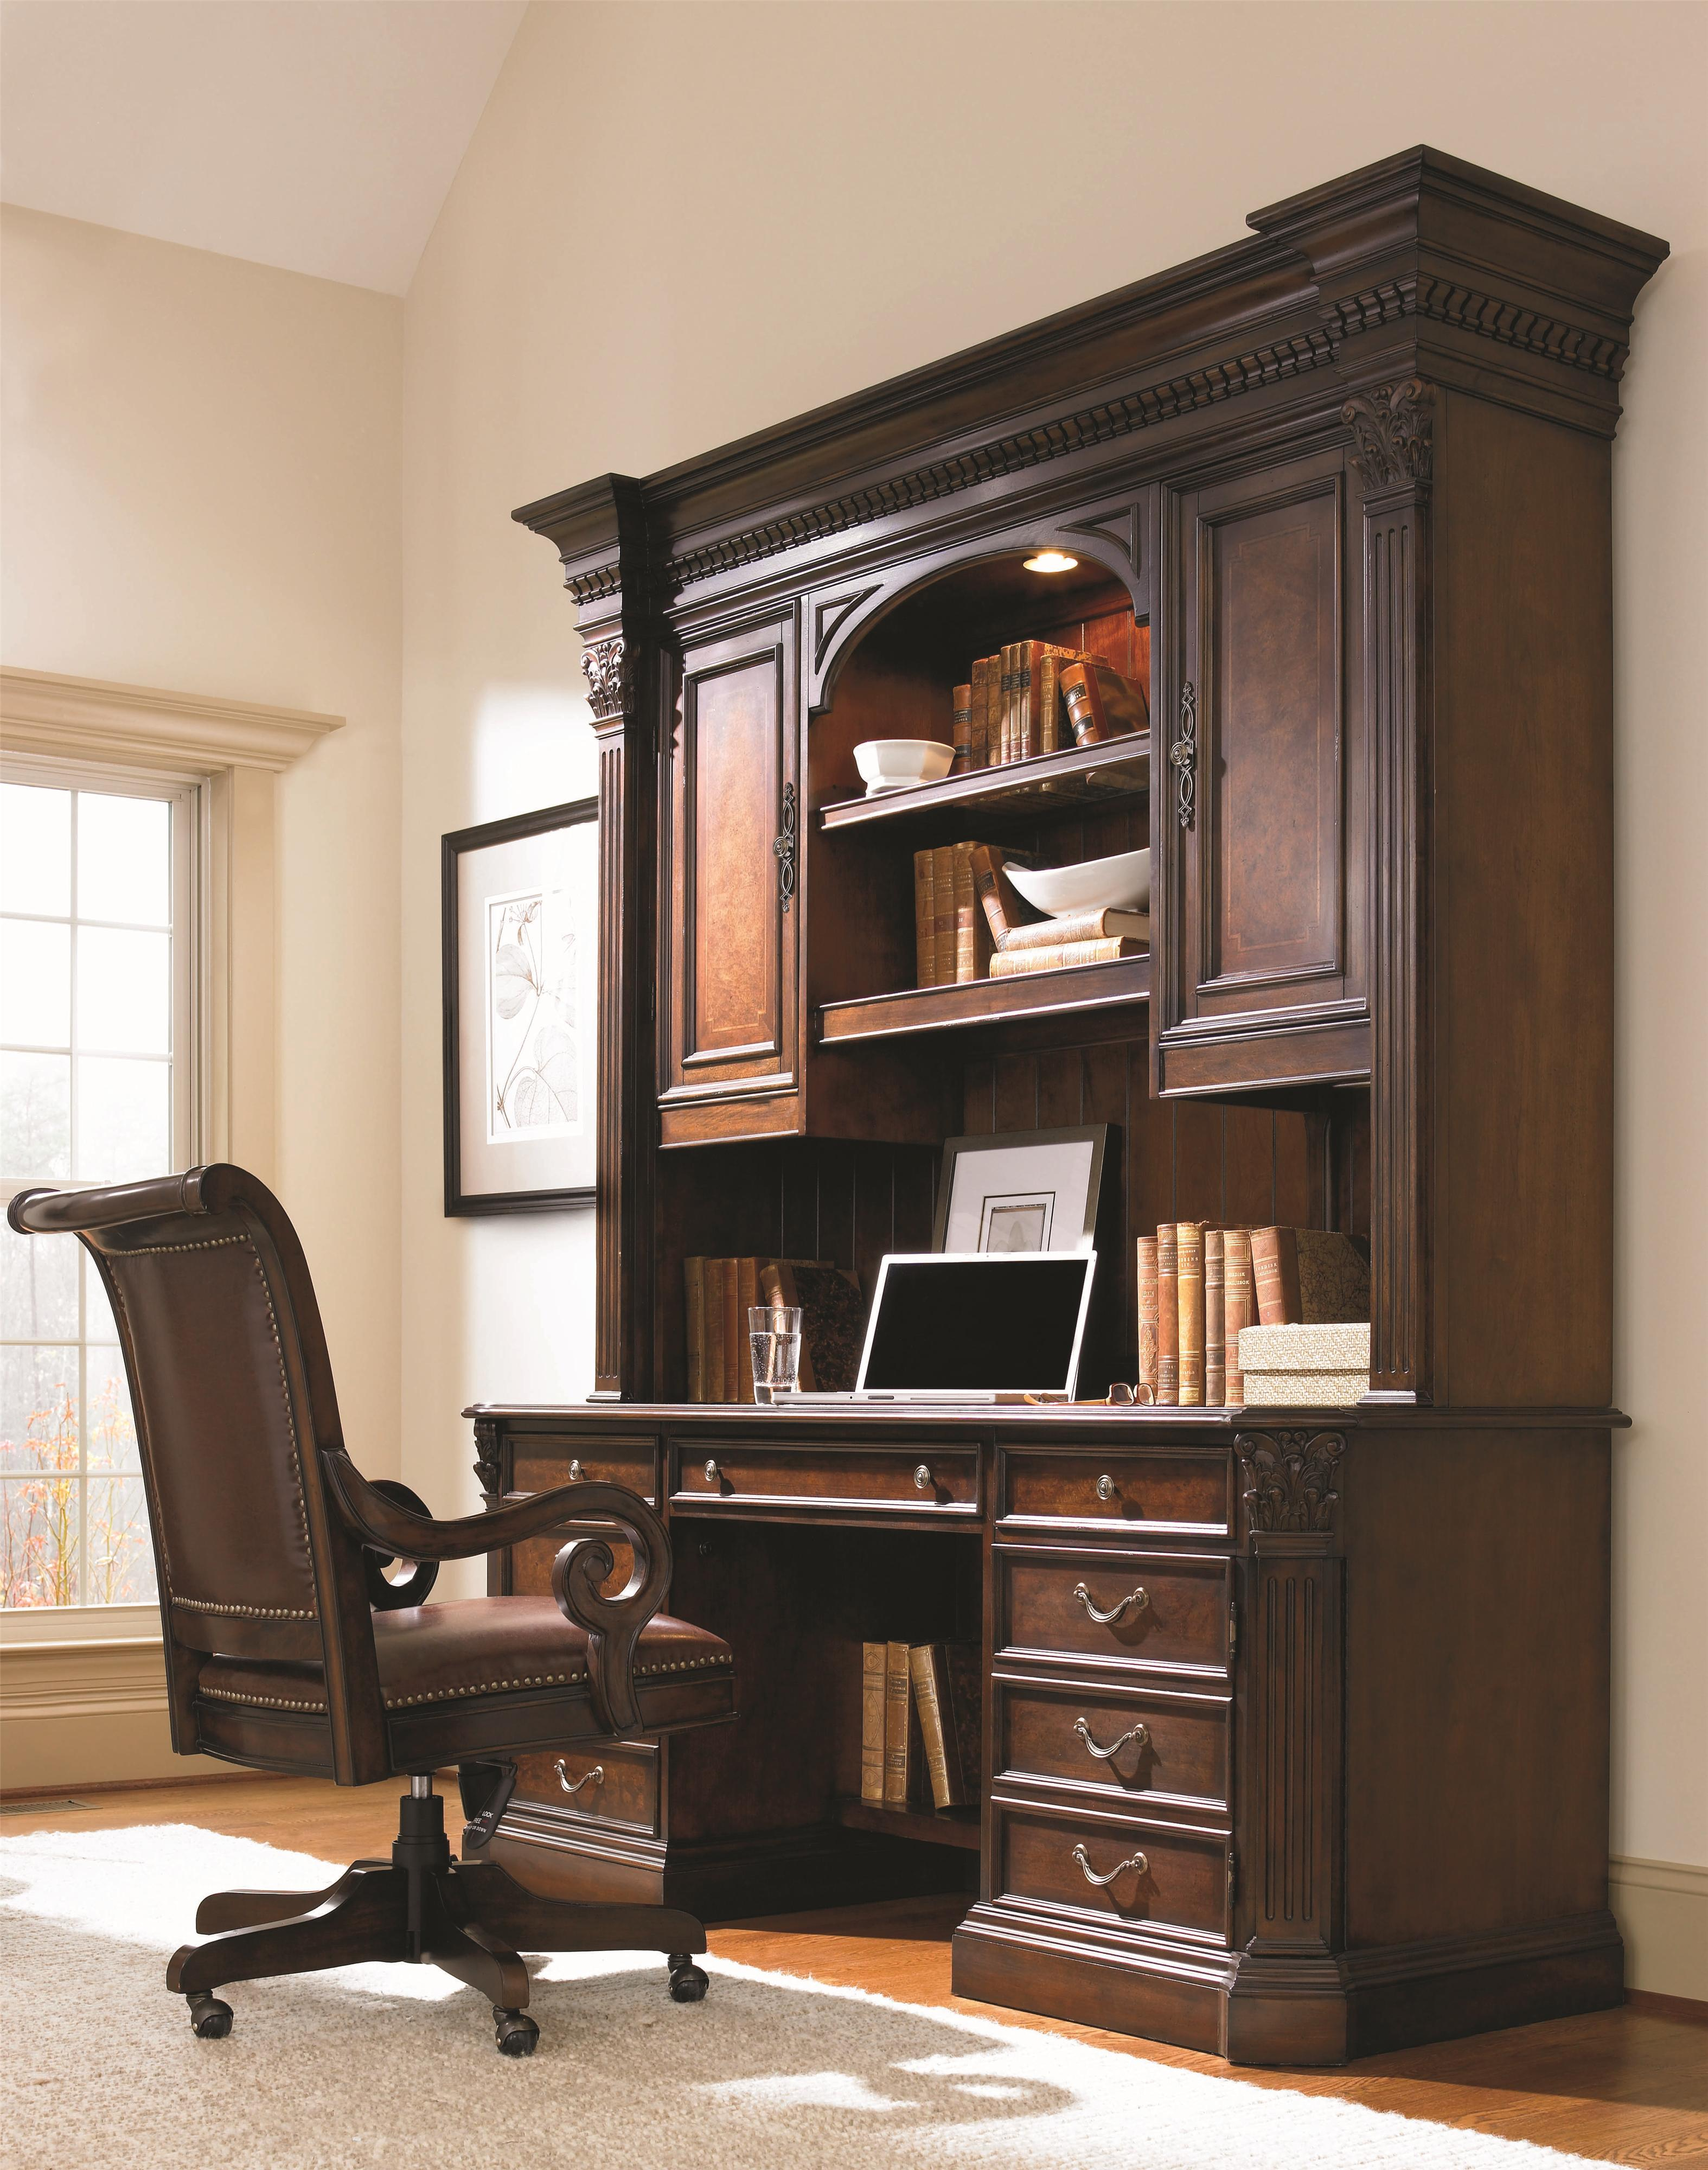 executive furniture hayneedle hooker product master rhapsody cfm desk